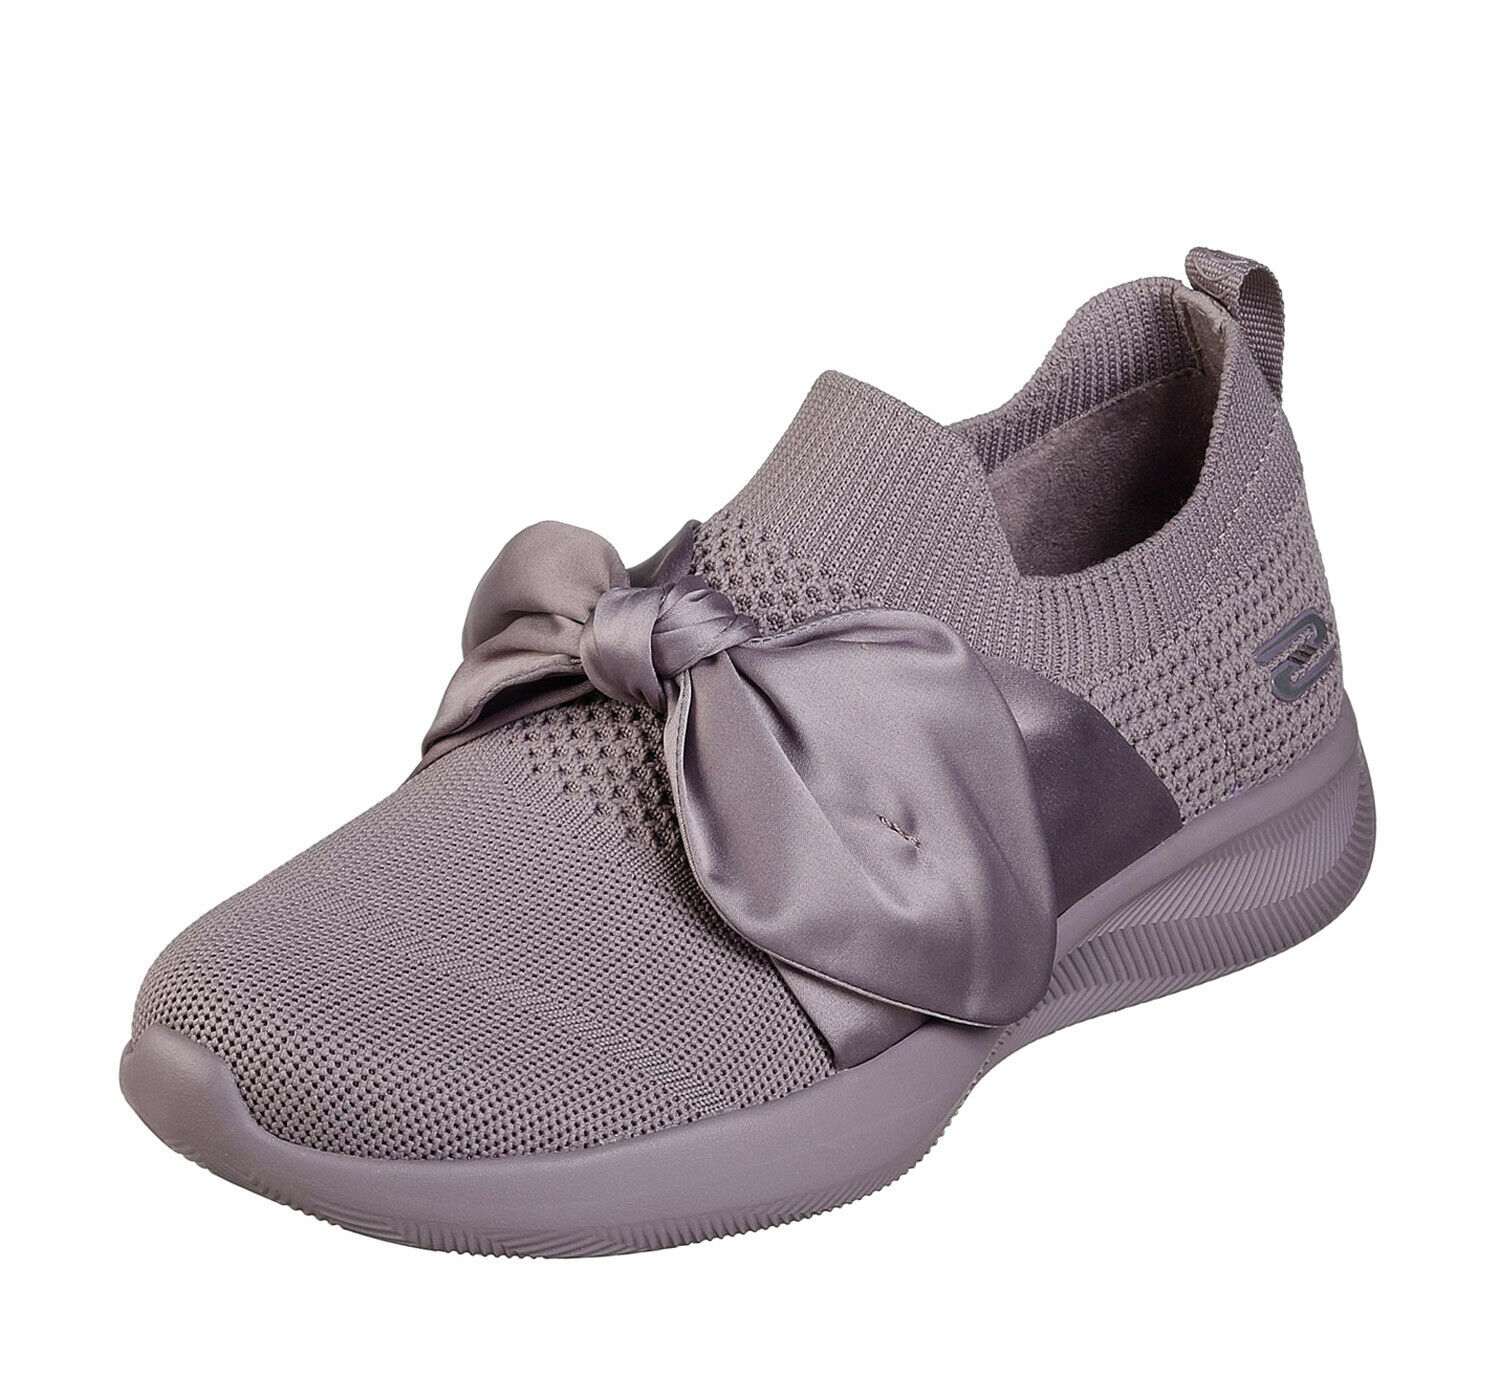 Skechers NEW Bobs Sport Squad 2 Bow Beauty mauve memory foam trainers Größes 3-8